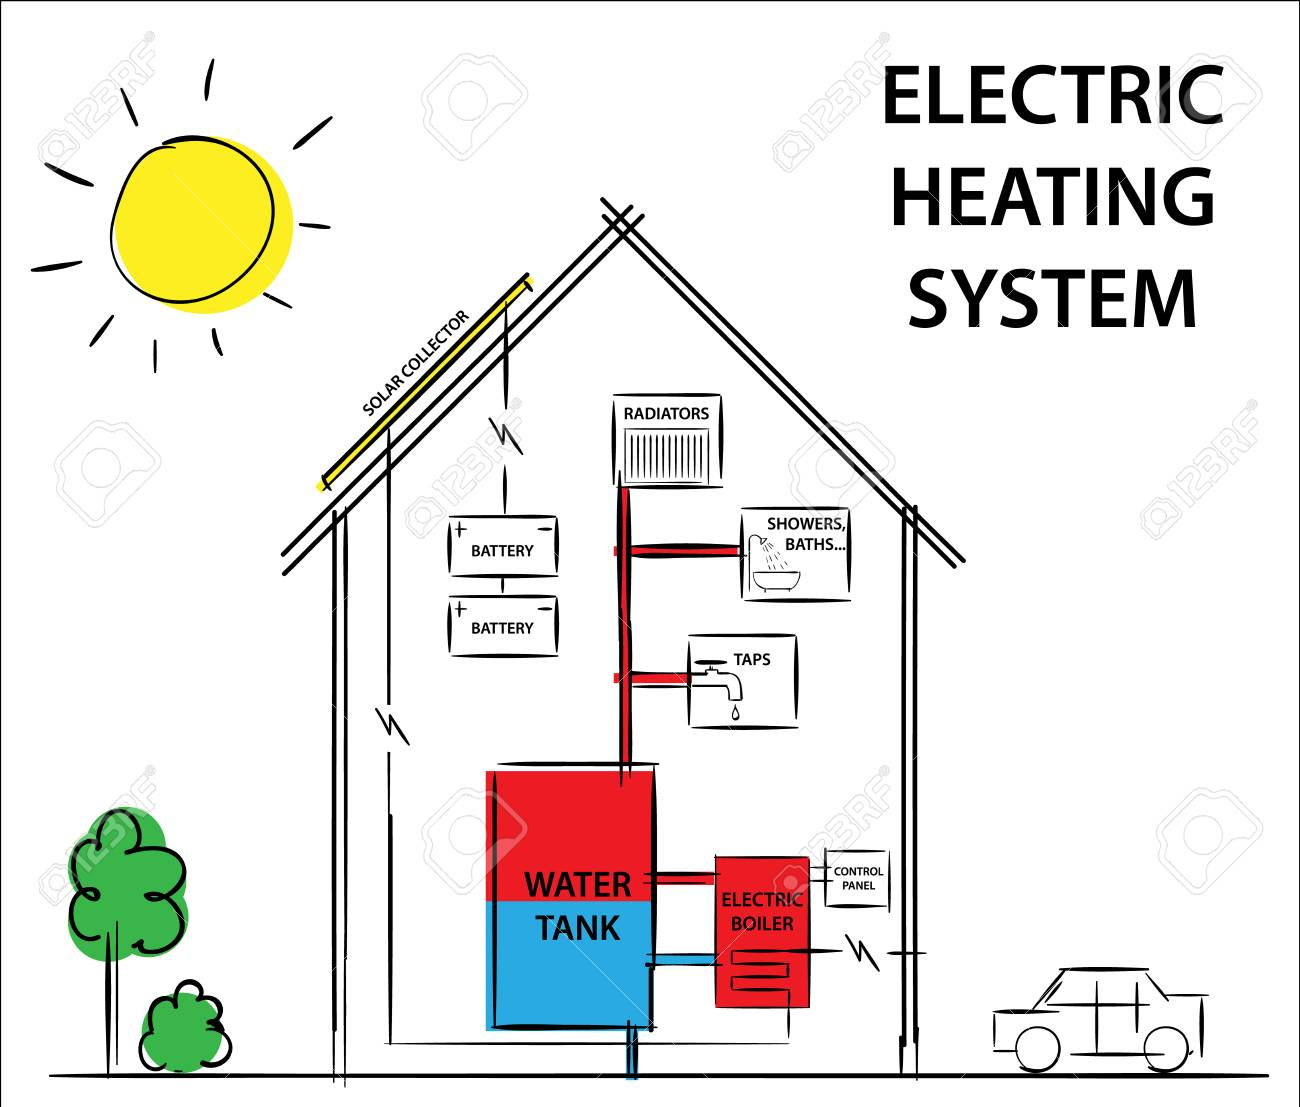 heating cooling diagram 19 7 fearless wonder de \u2022solar electric heating and cooling systems diagram drawing rh 123rf com heating and cooling wire diagram heating and cooling weathering diagram